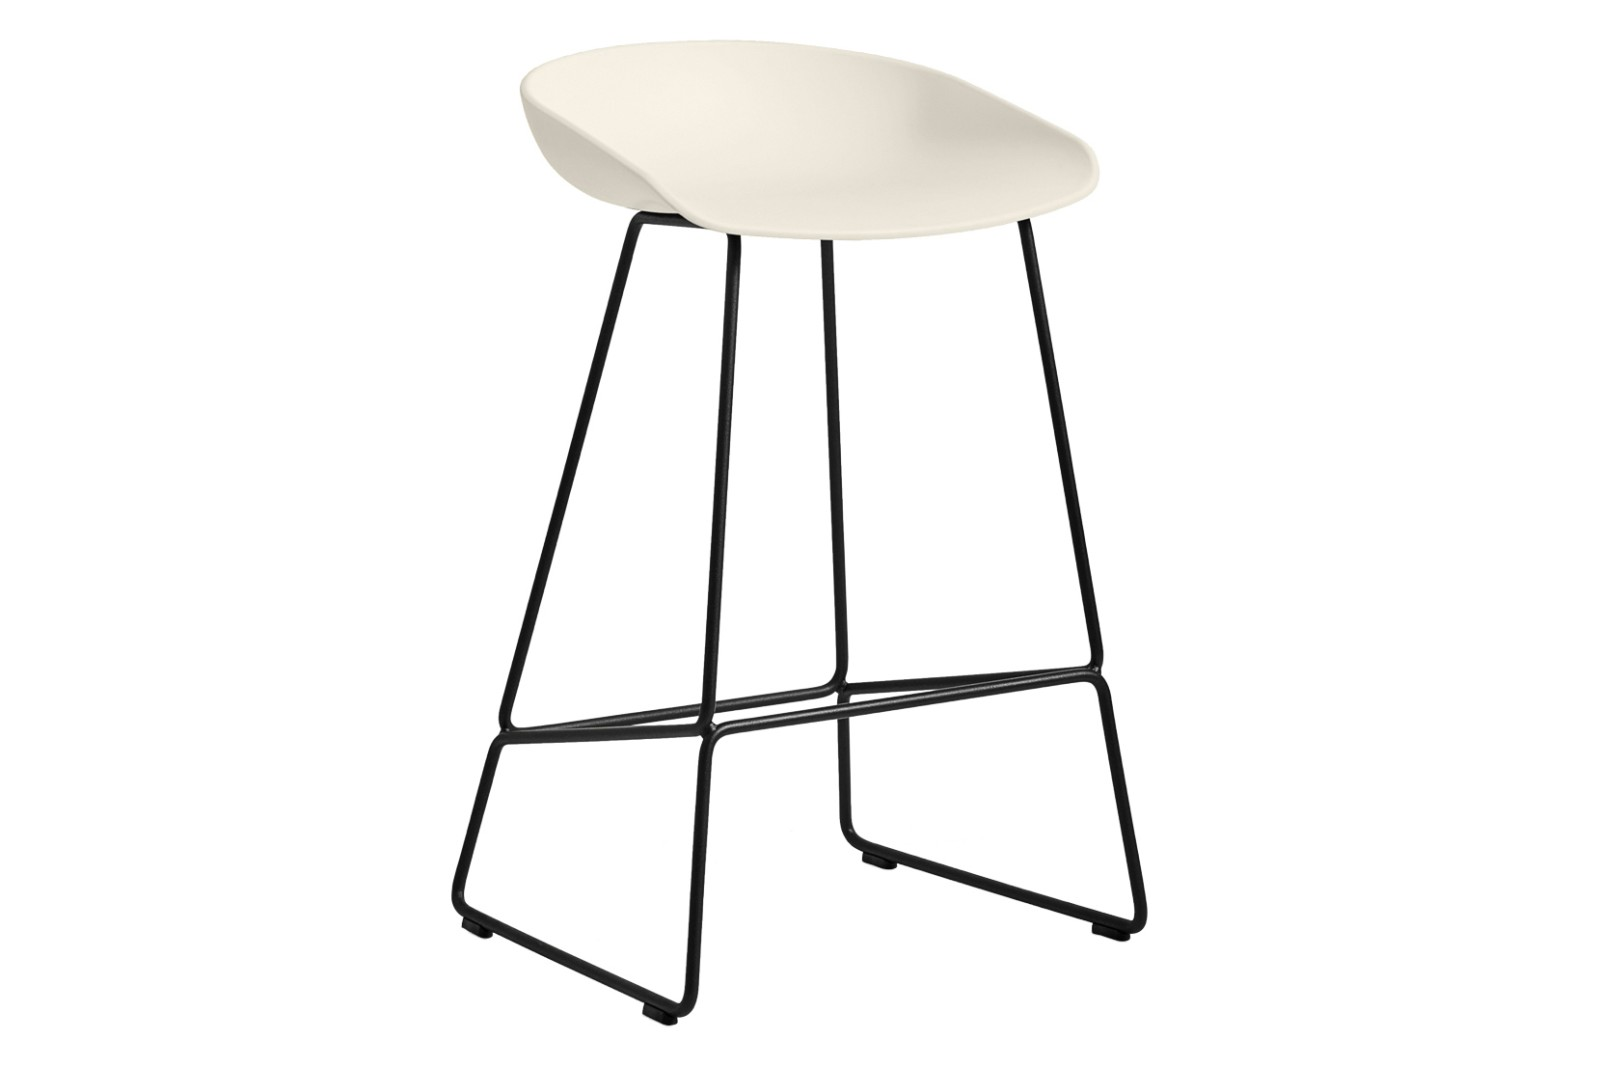 AAS 38 Low Stool Metal Black, Plastic Cream White